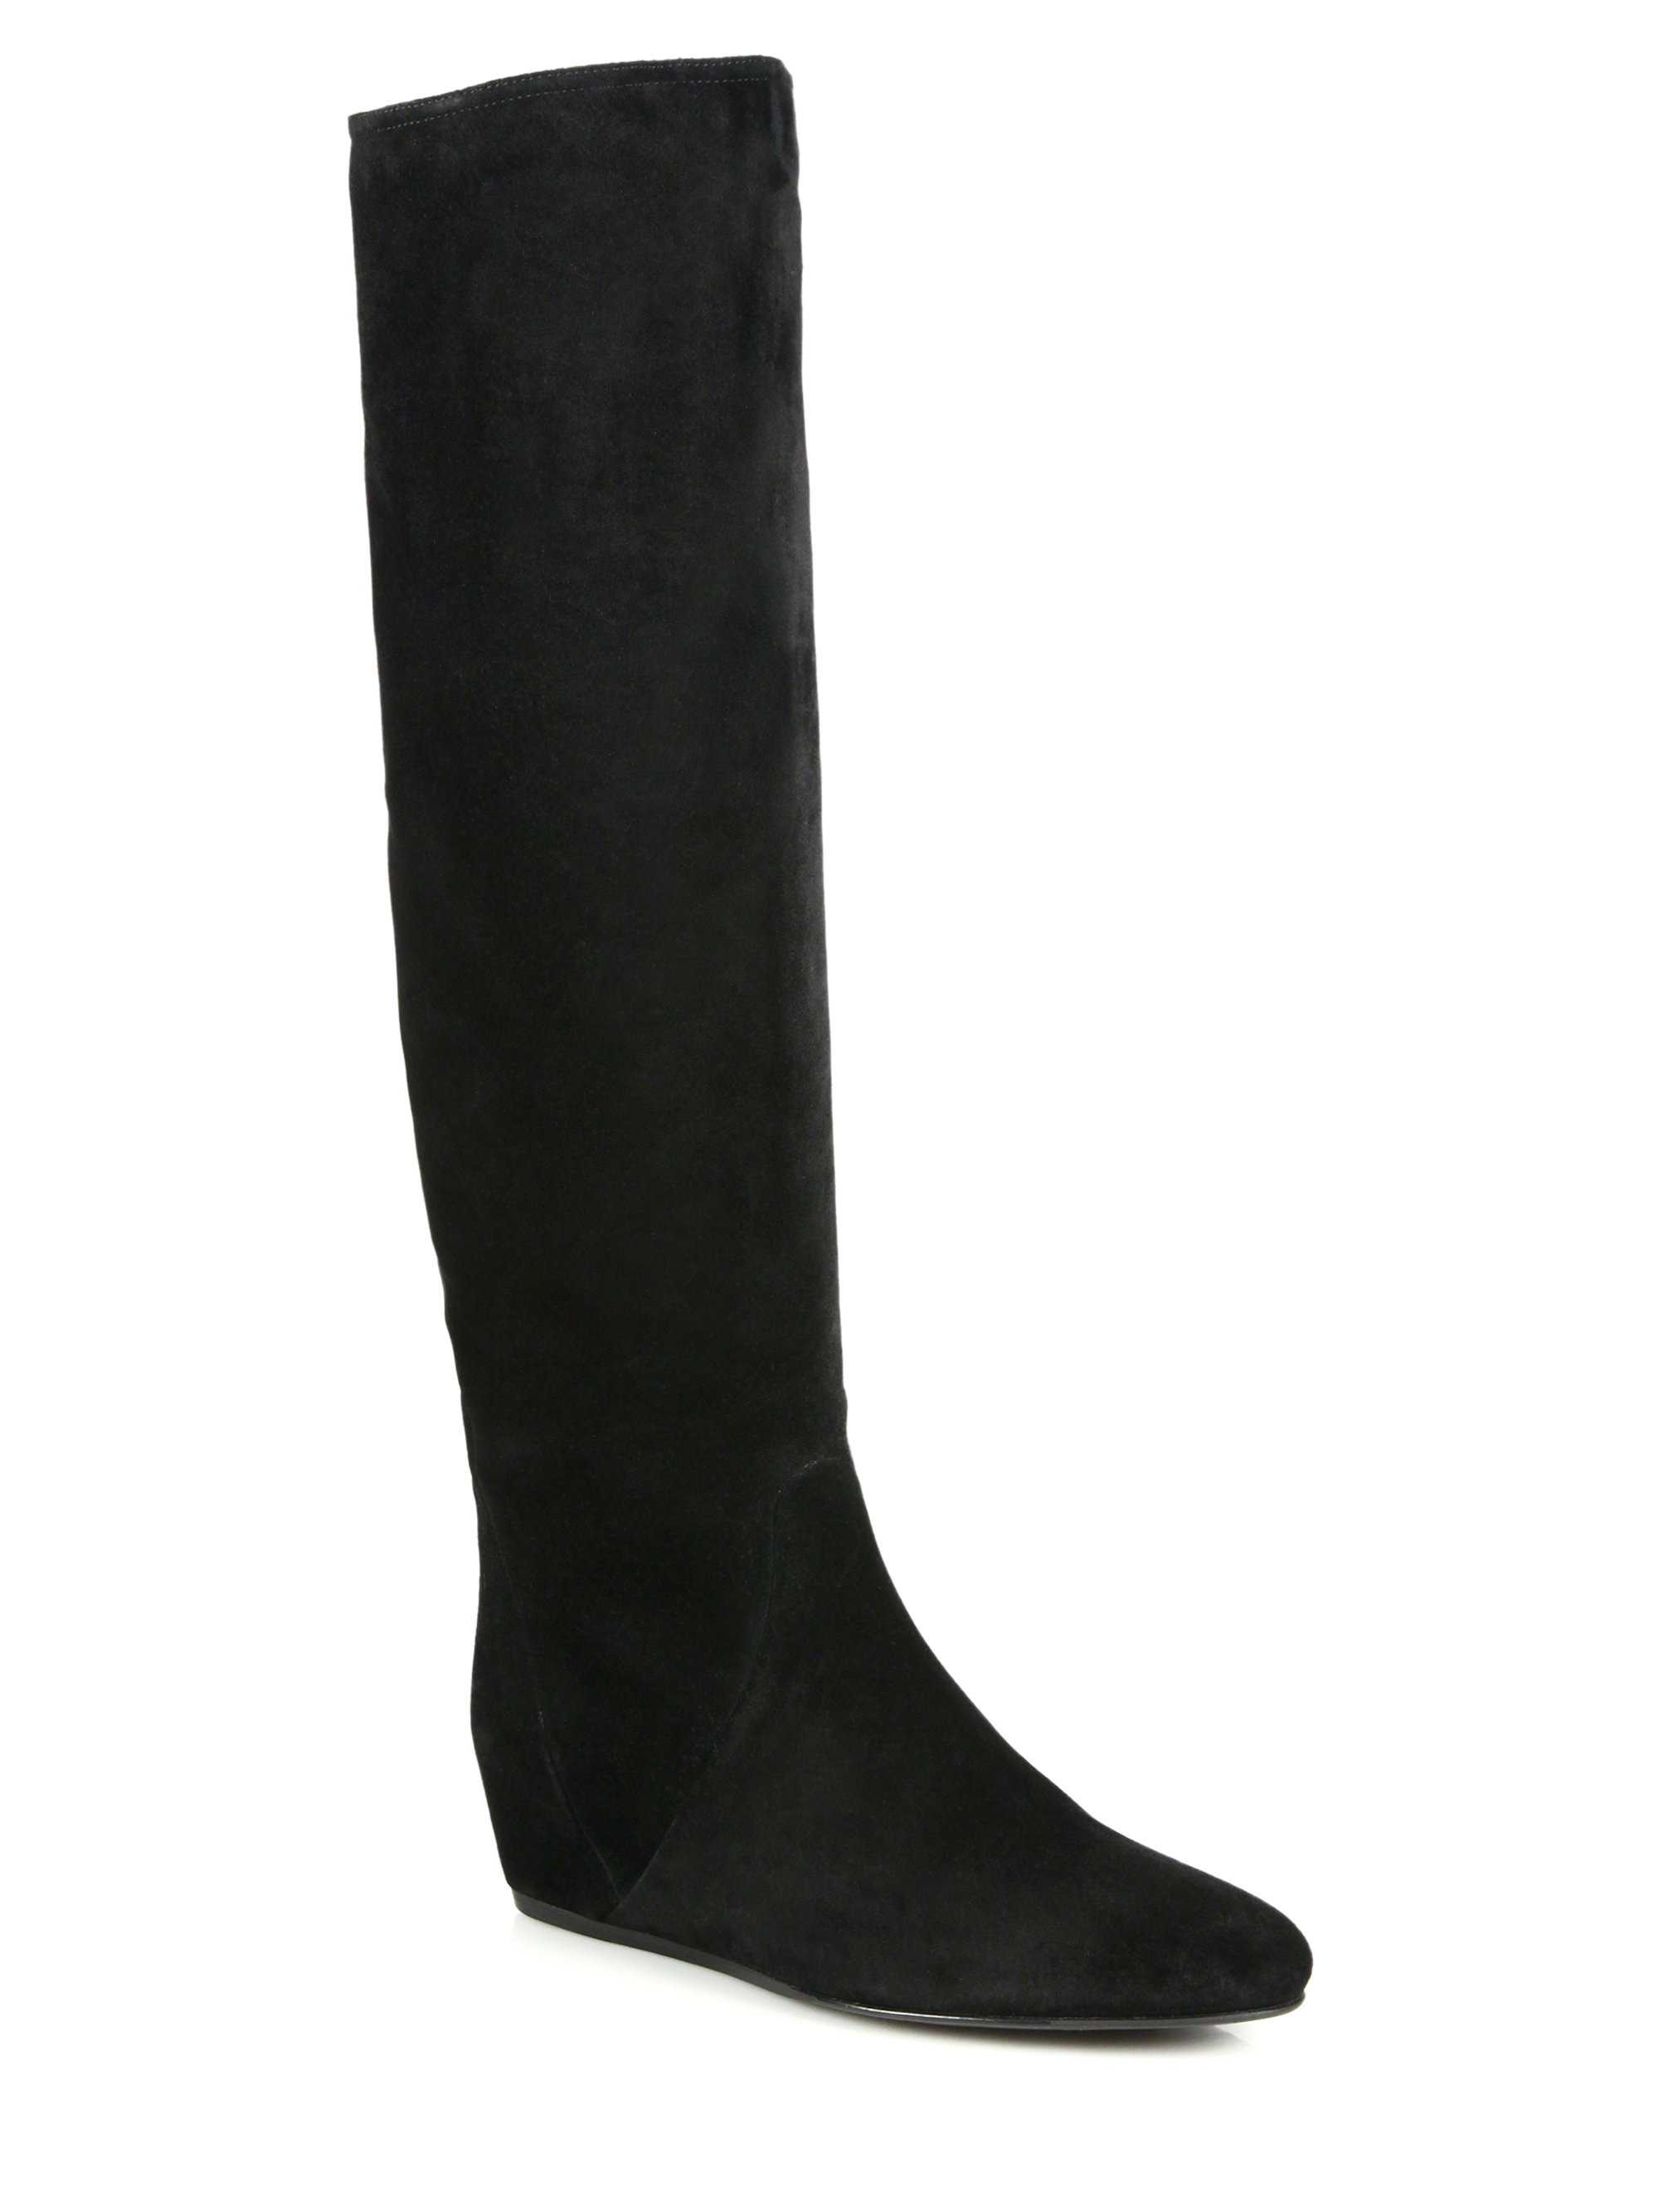 d920f16a7147 Lyst - Lanvin Suede Knee-high Hidden Wedge Boots in Black